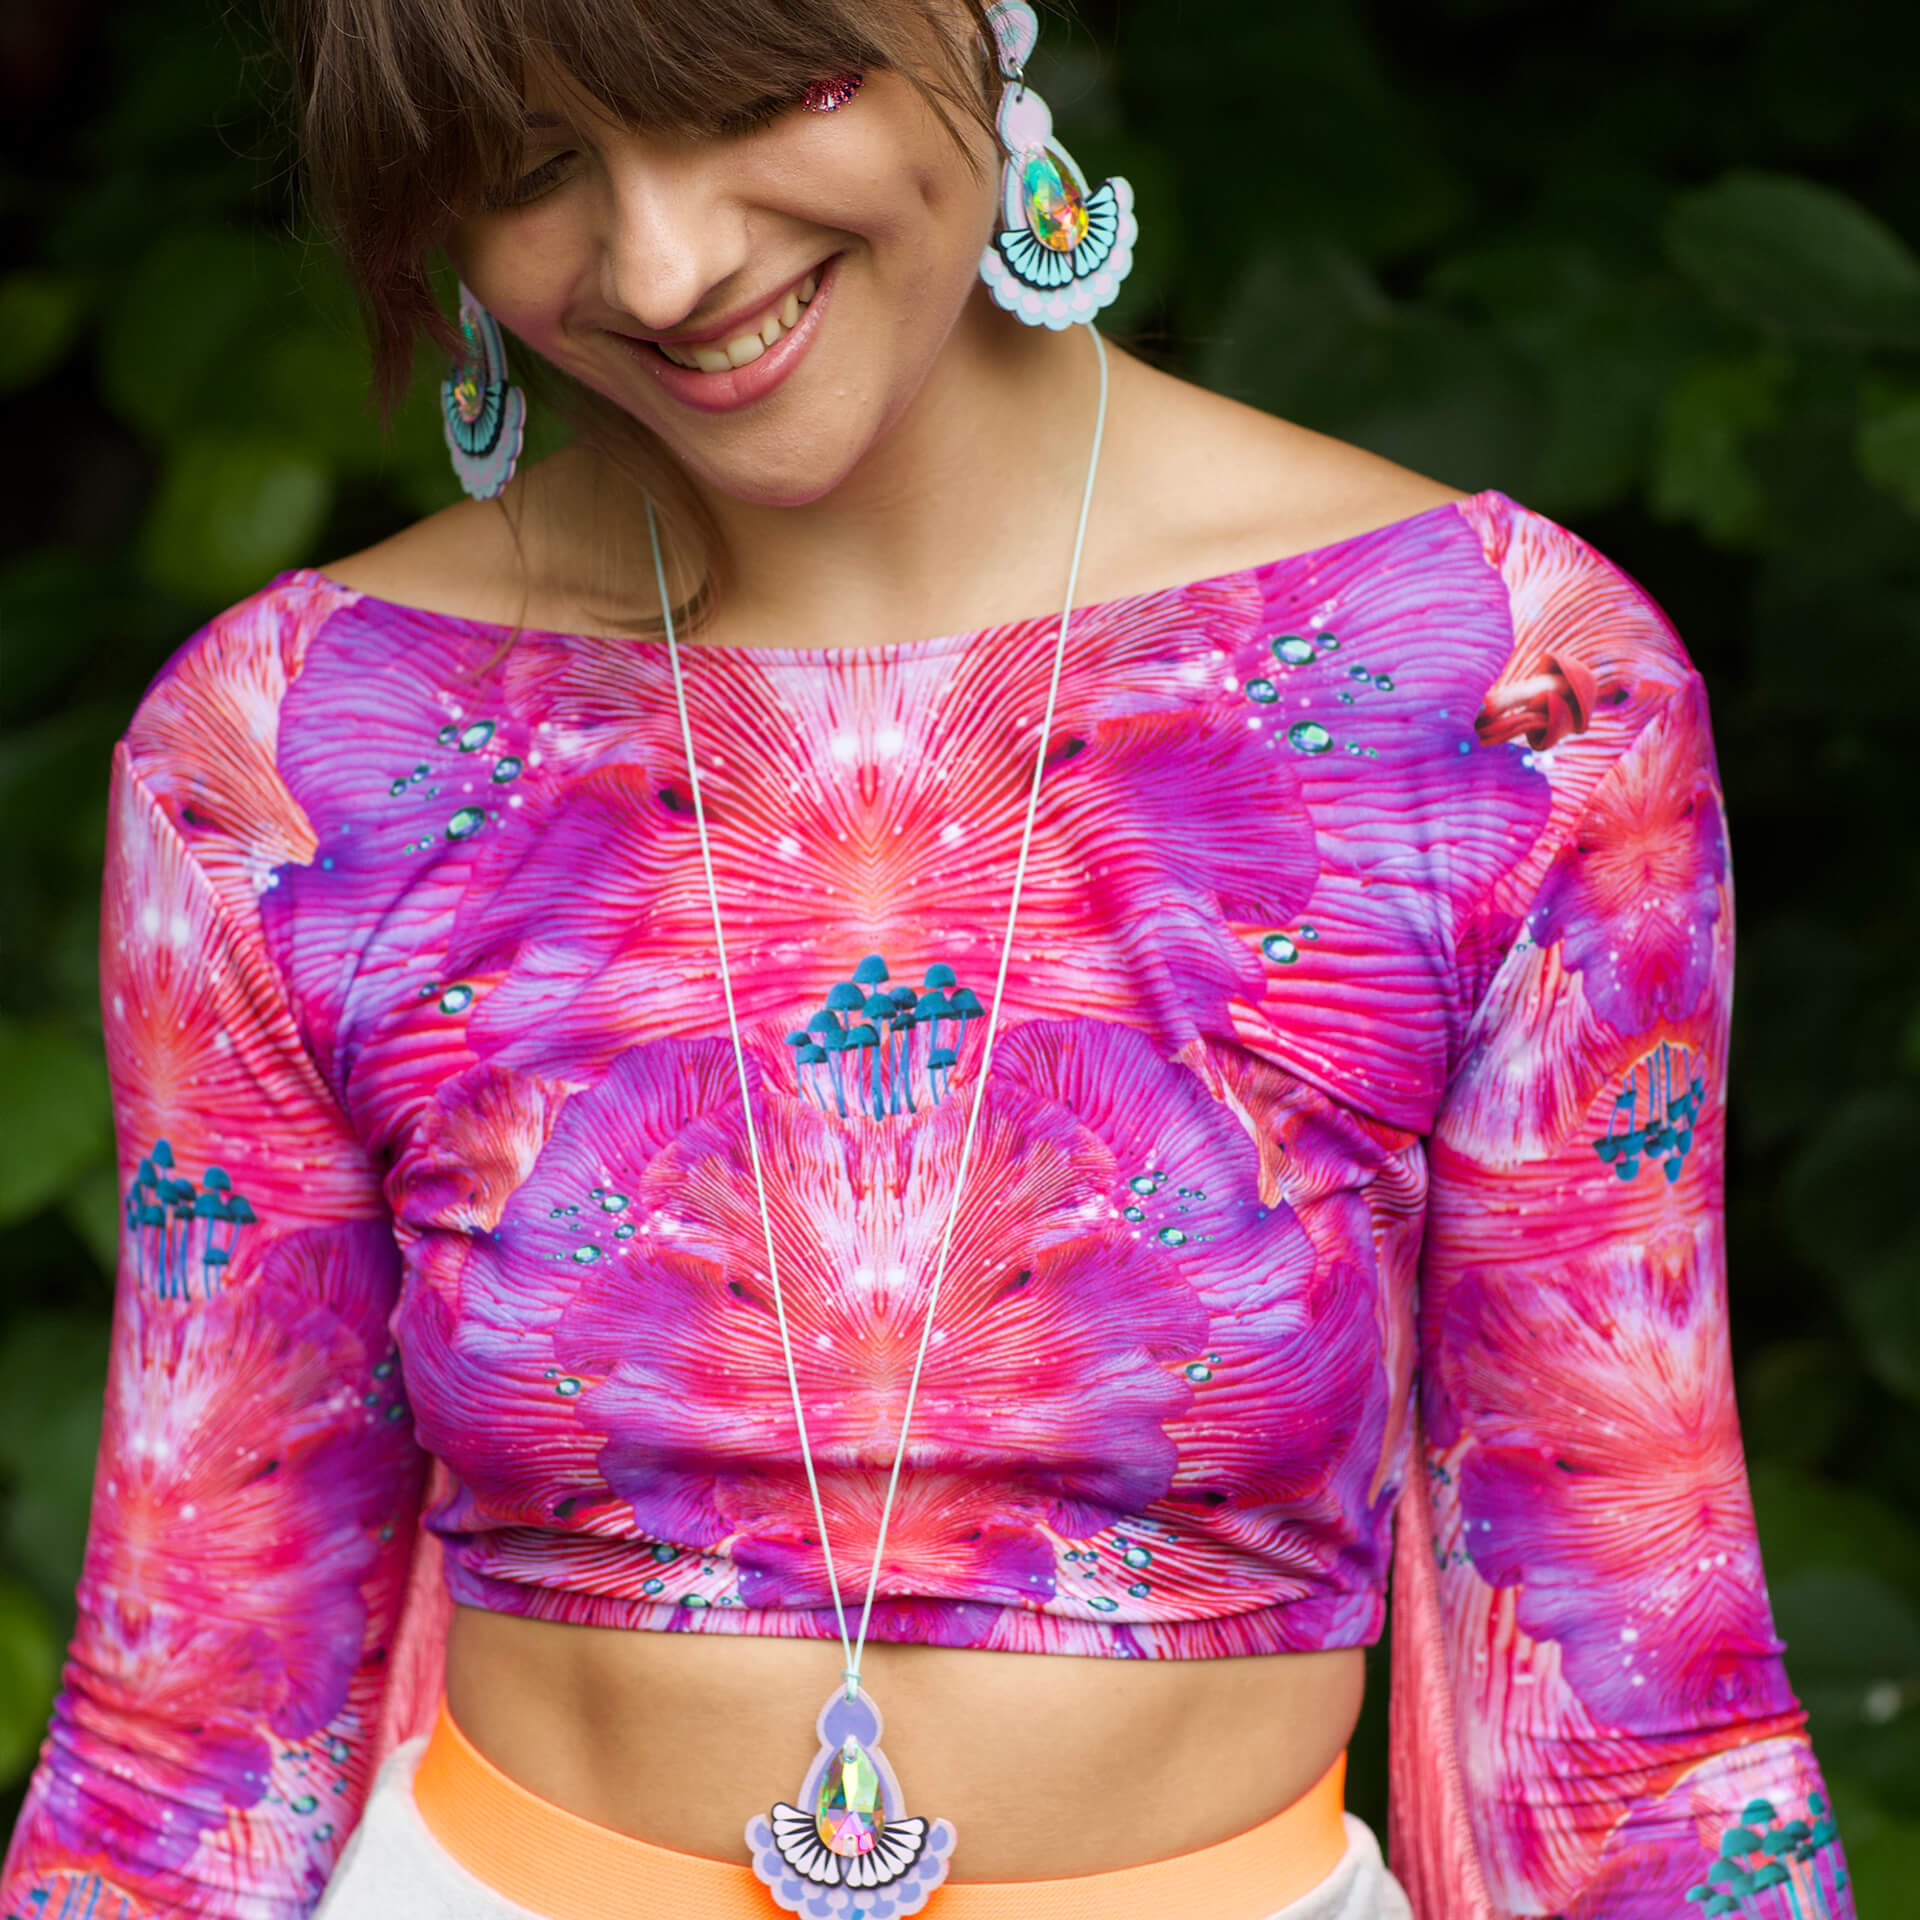 A young woman wearing a bright pink patterned, long sleeved lycra crop, lilac statement earrings and a pendant necklace with a long cord is looking down at the ground and smiling.